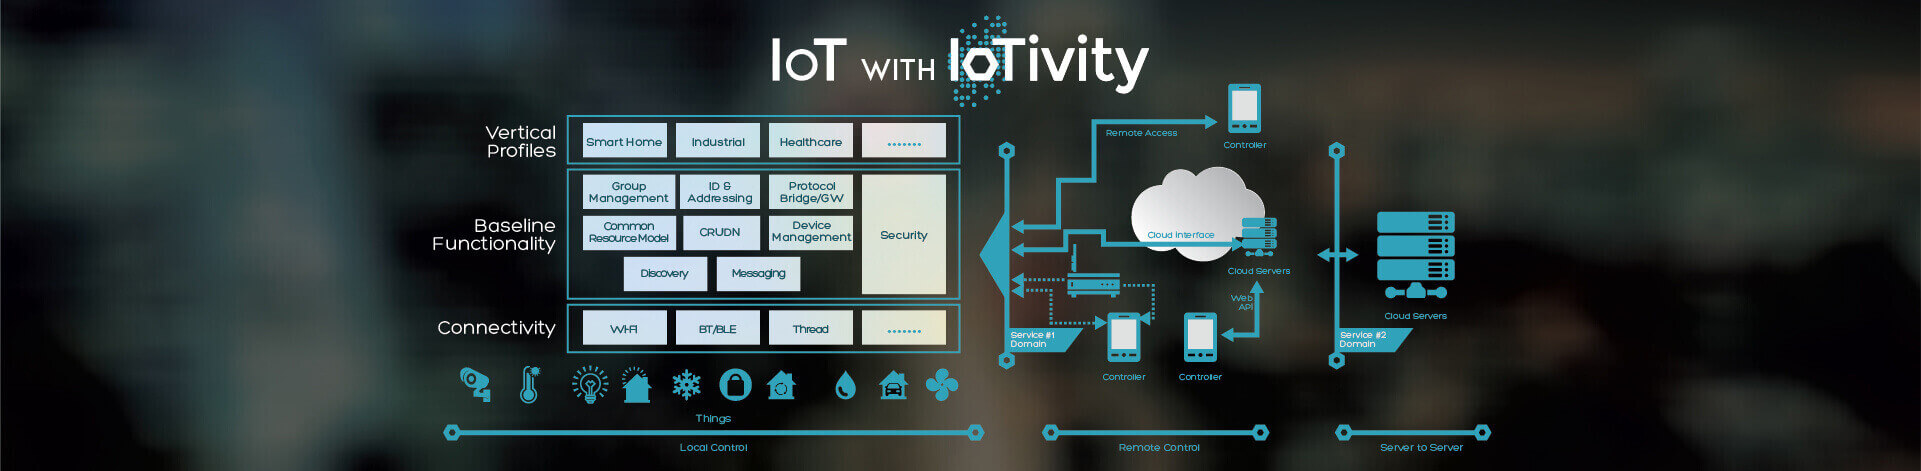 IoT with IoTivity